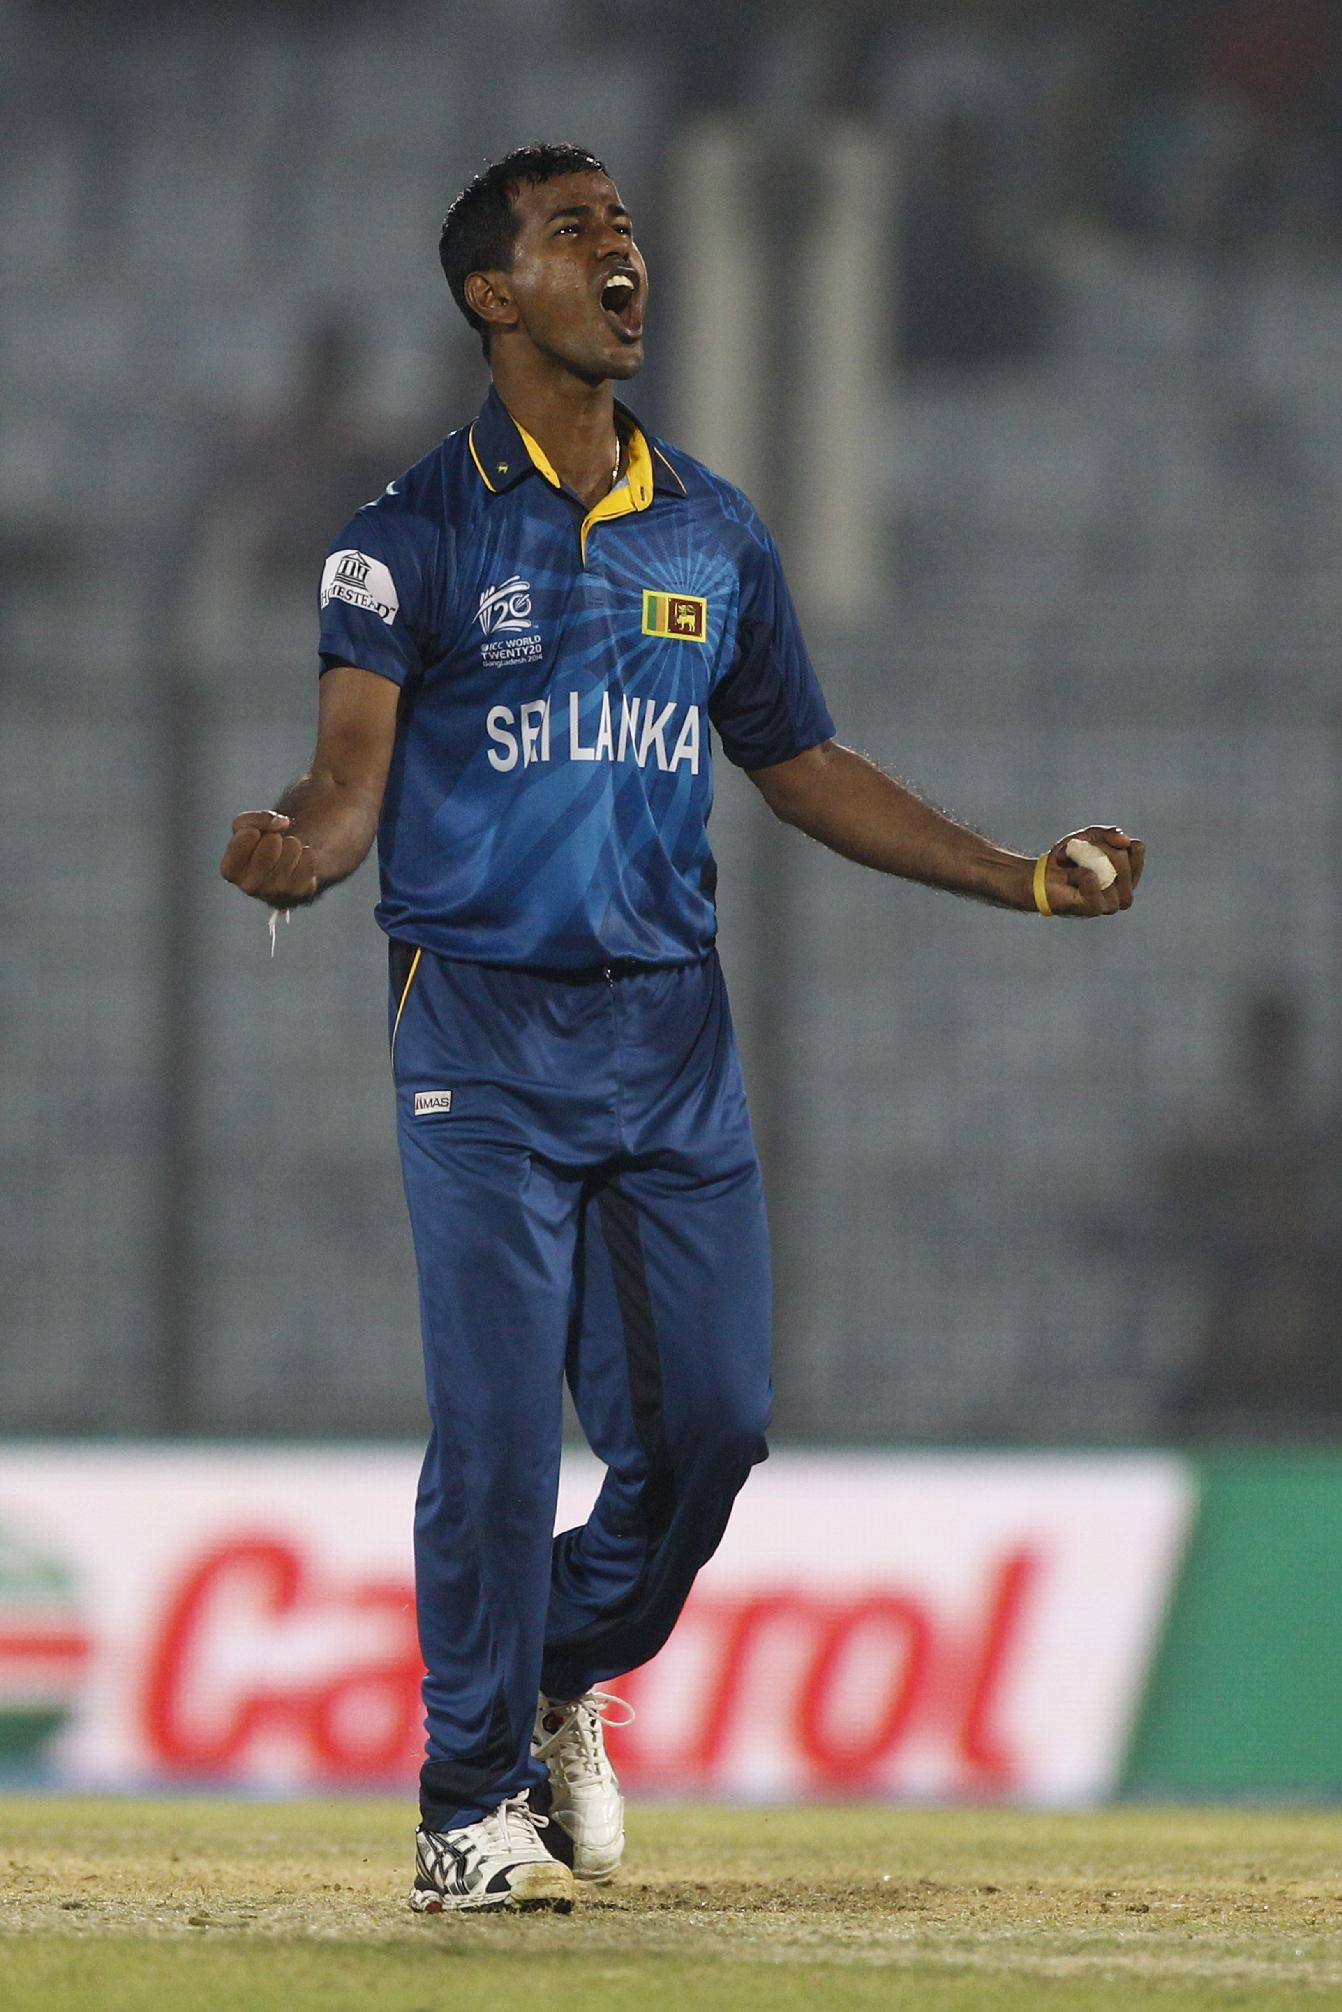 Sri Lanka's Nuwan Kulasekara celebrates the dismissal of England's Jos Buttler during their ICC Twenty20 Cricket World Cup match in Chittagong, Bangladesh, Thursday, March 27, 2014